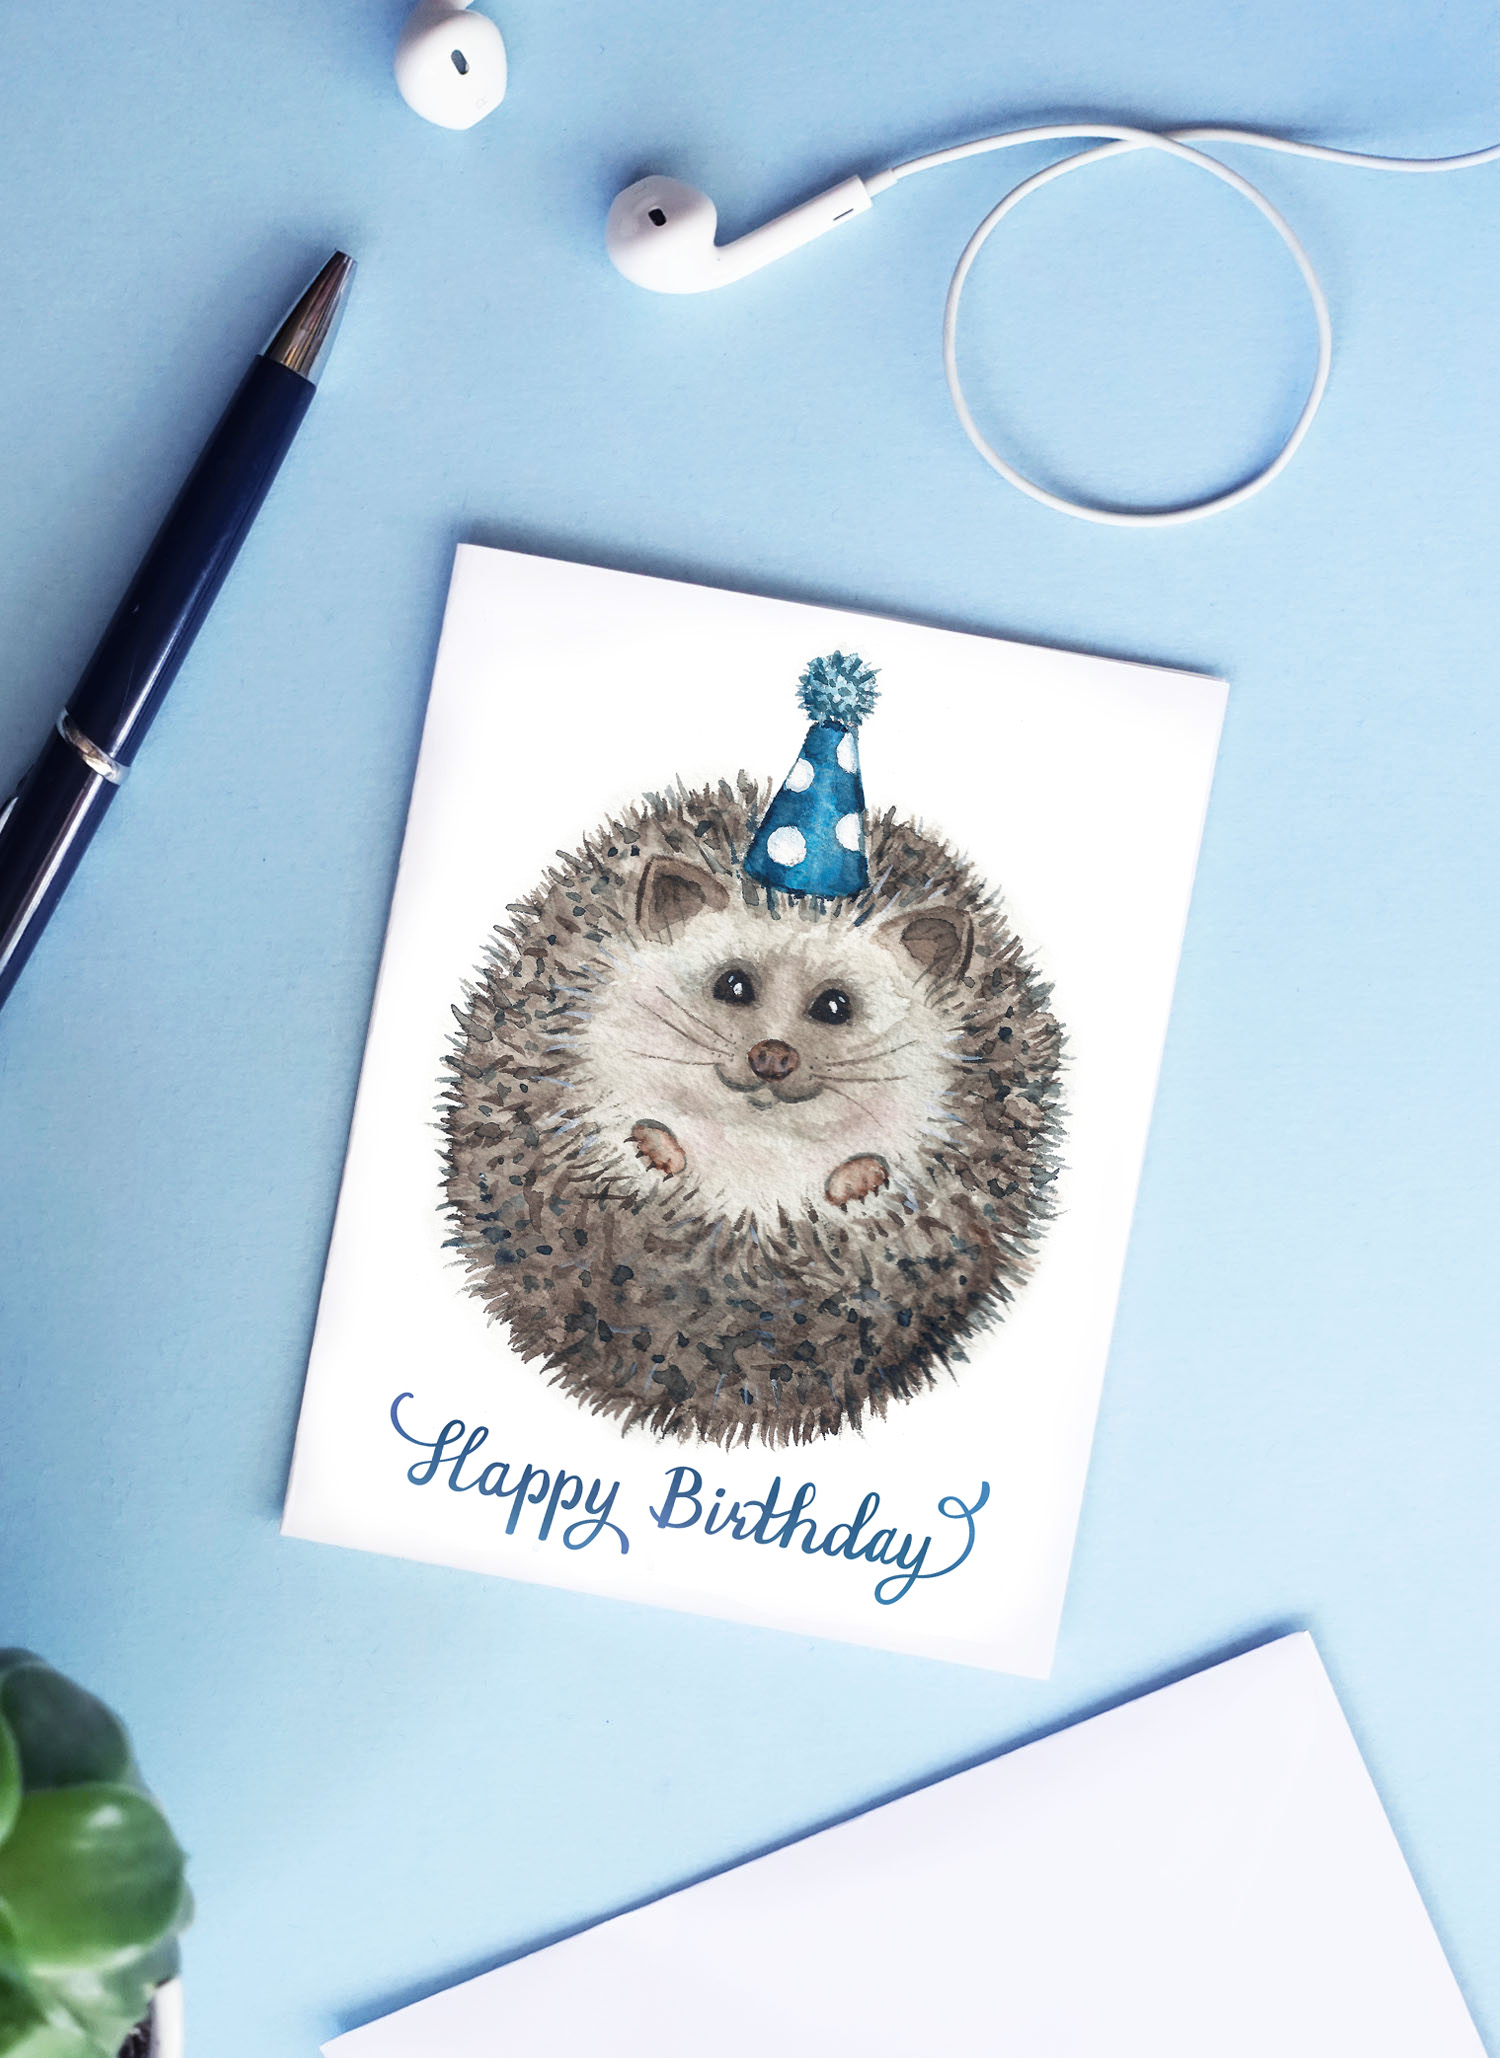 Hedgehog Birthday Card